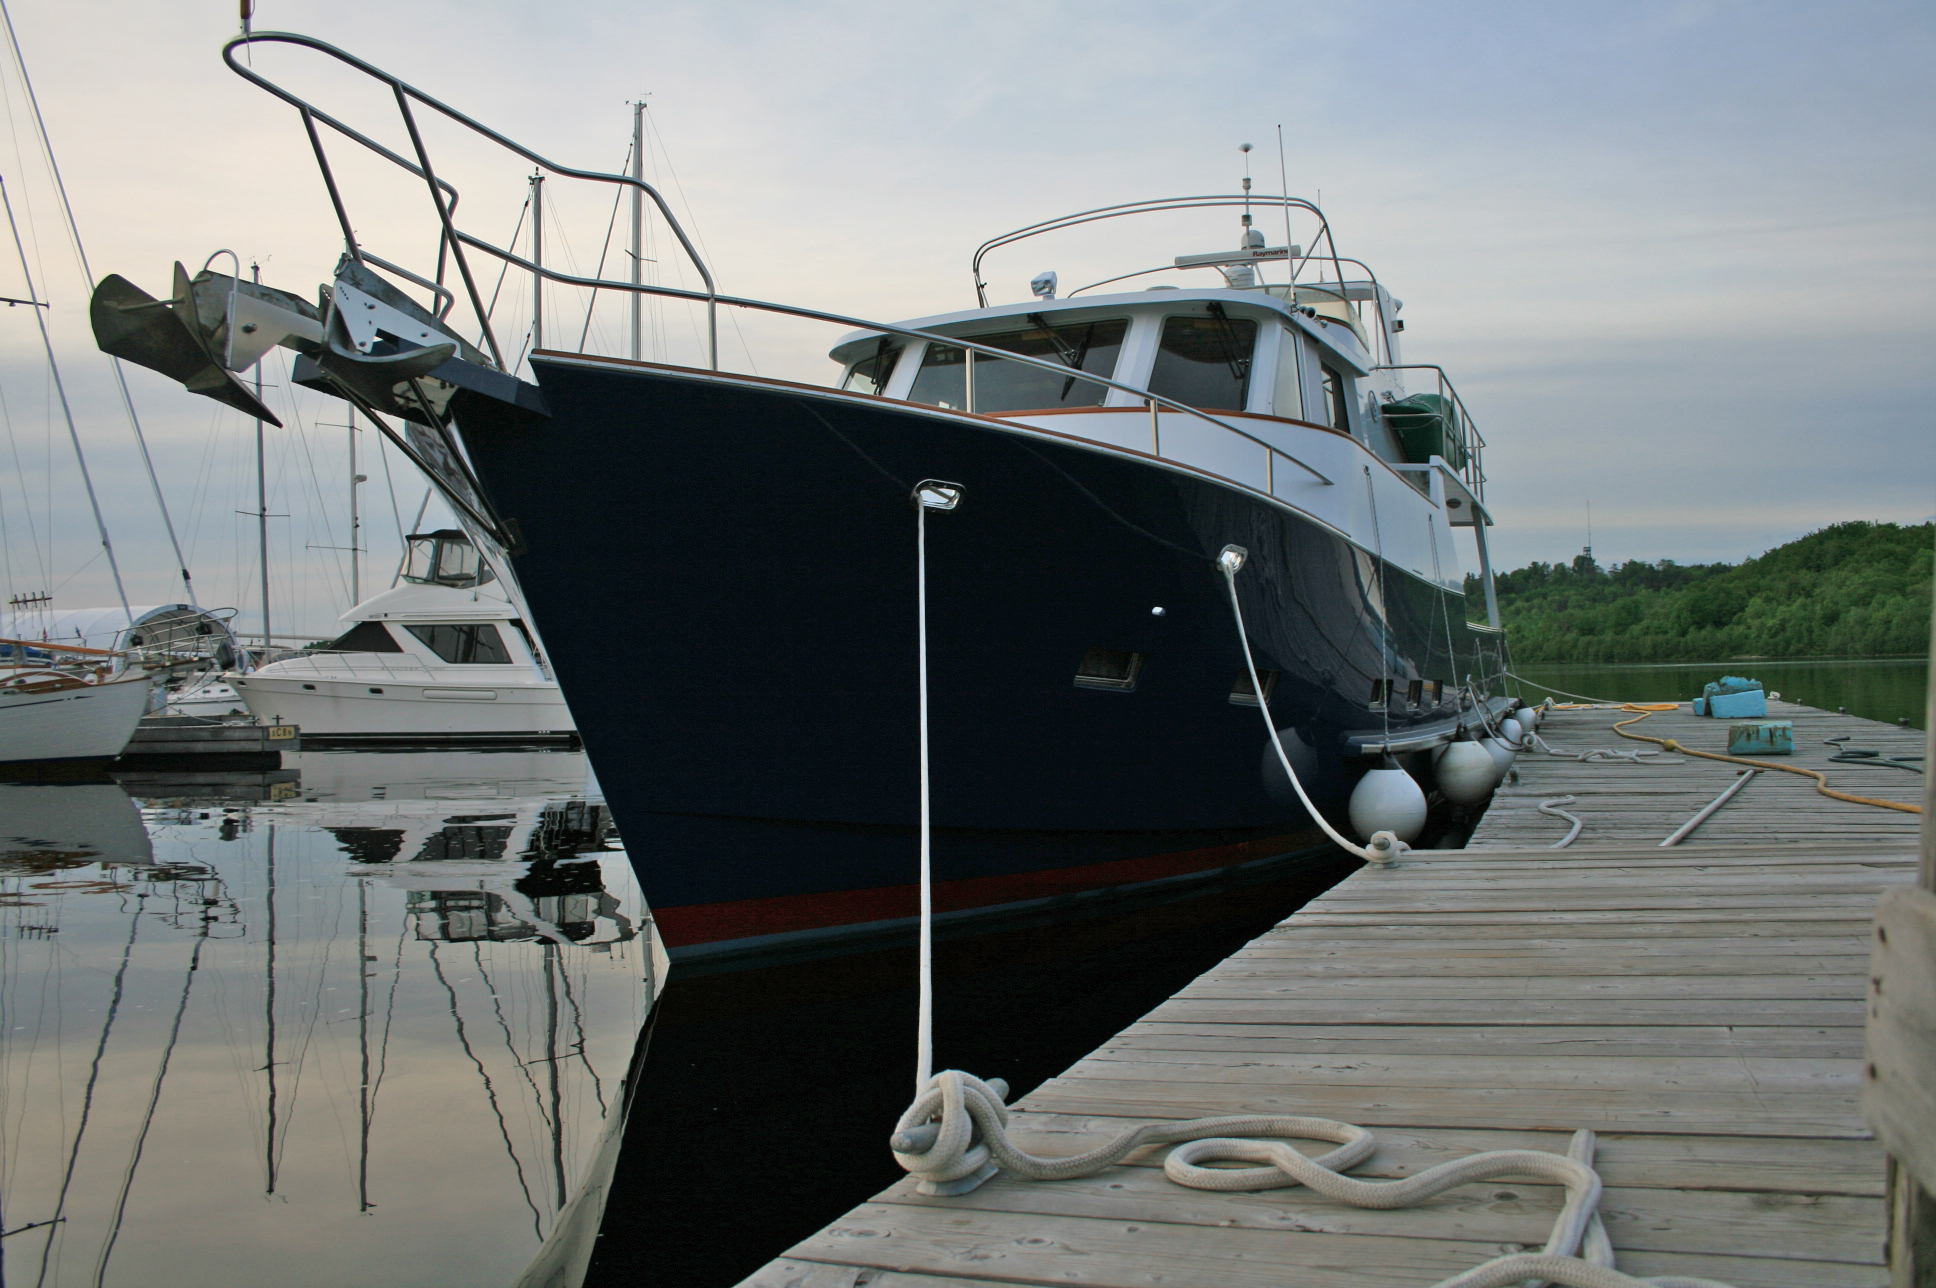 For the boating enthusiast who wants  to get in their boat and go,  we look after the rest!